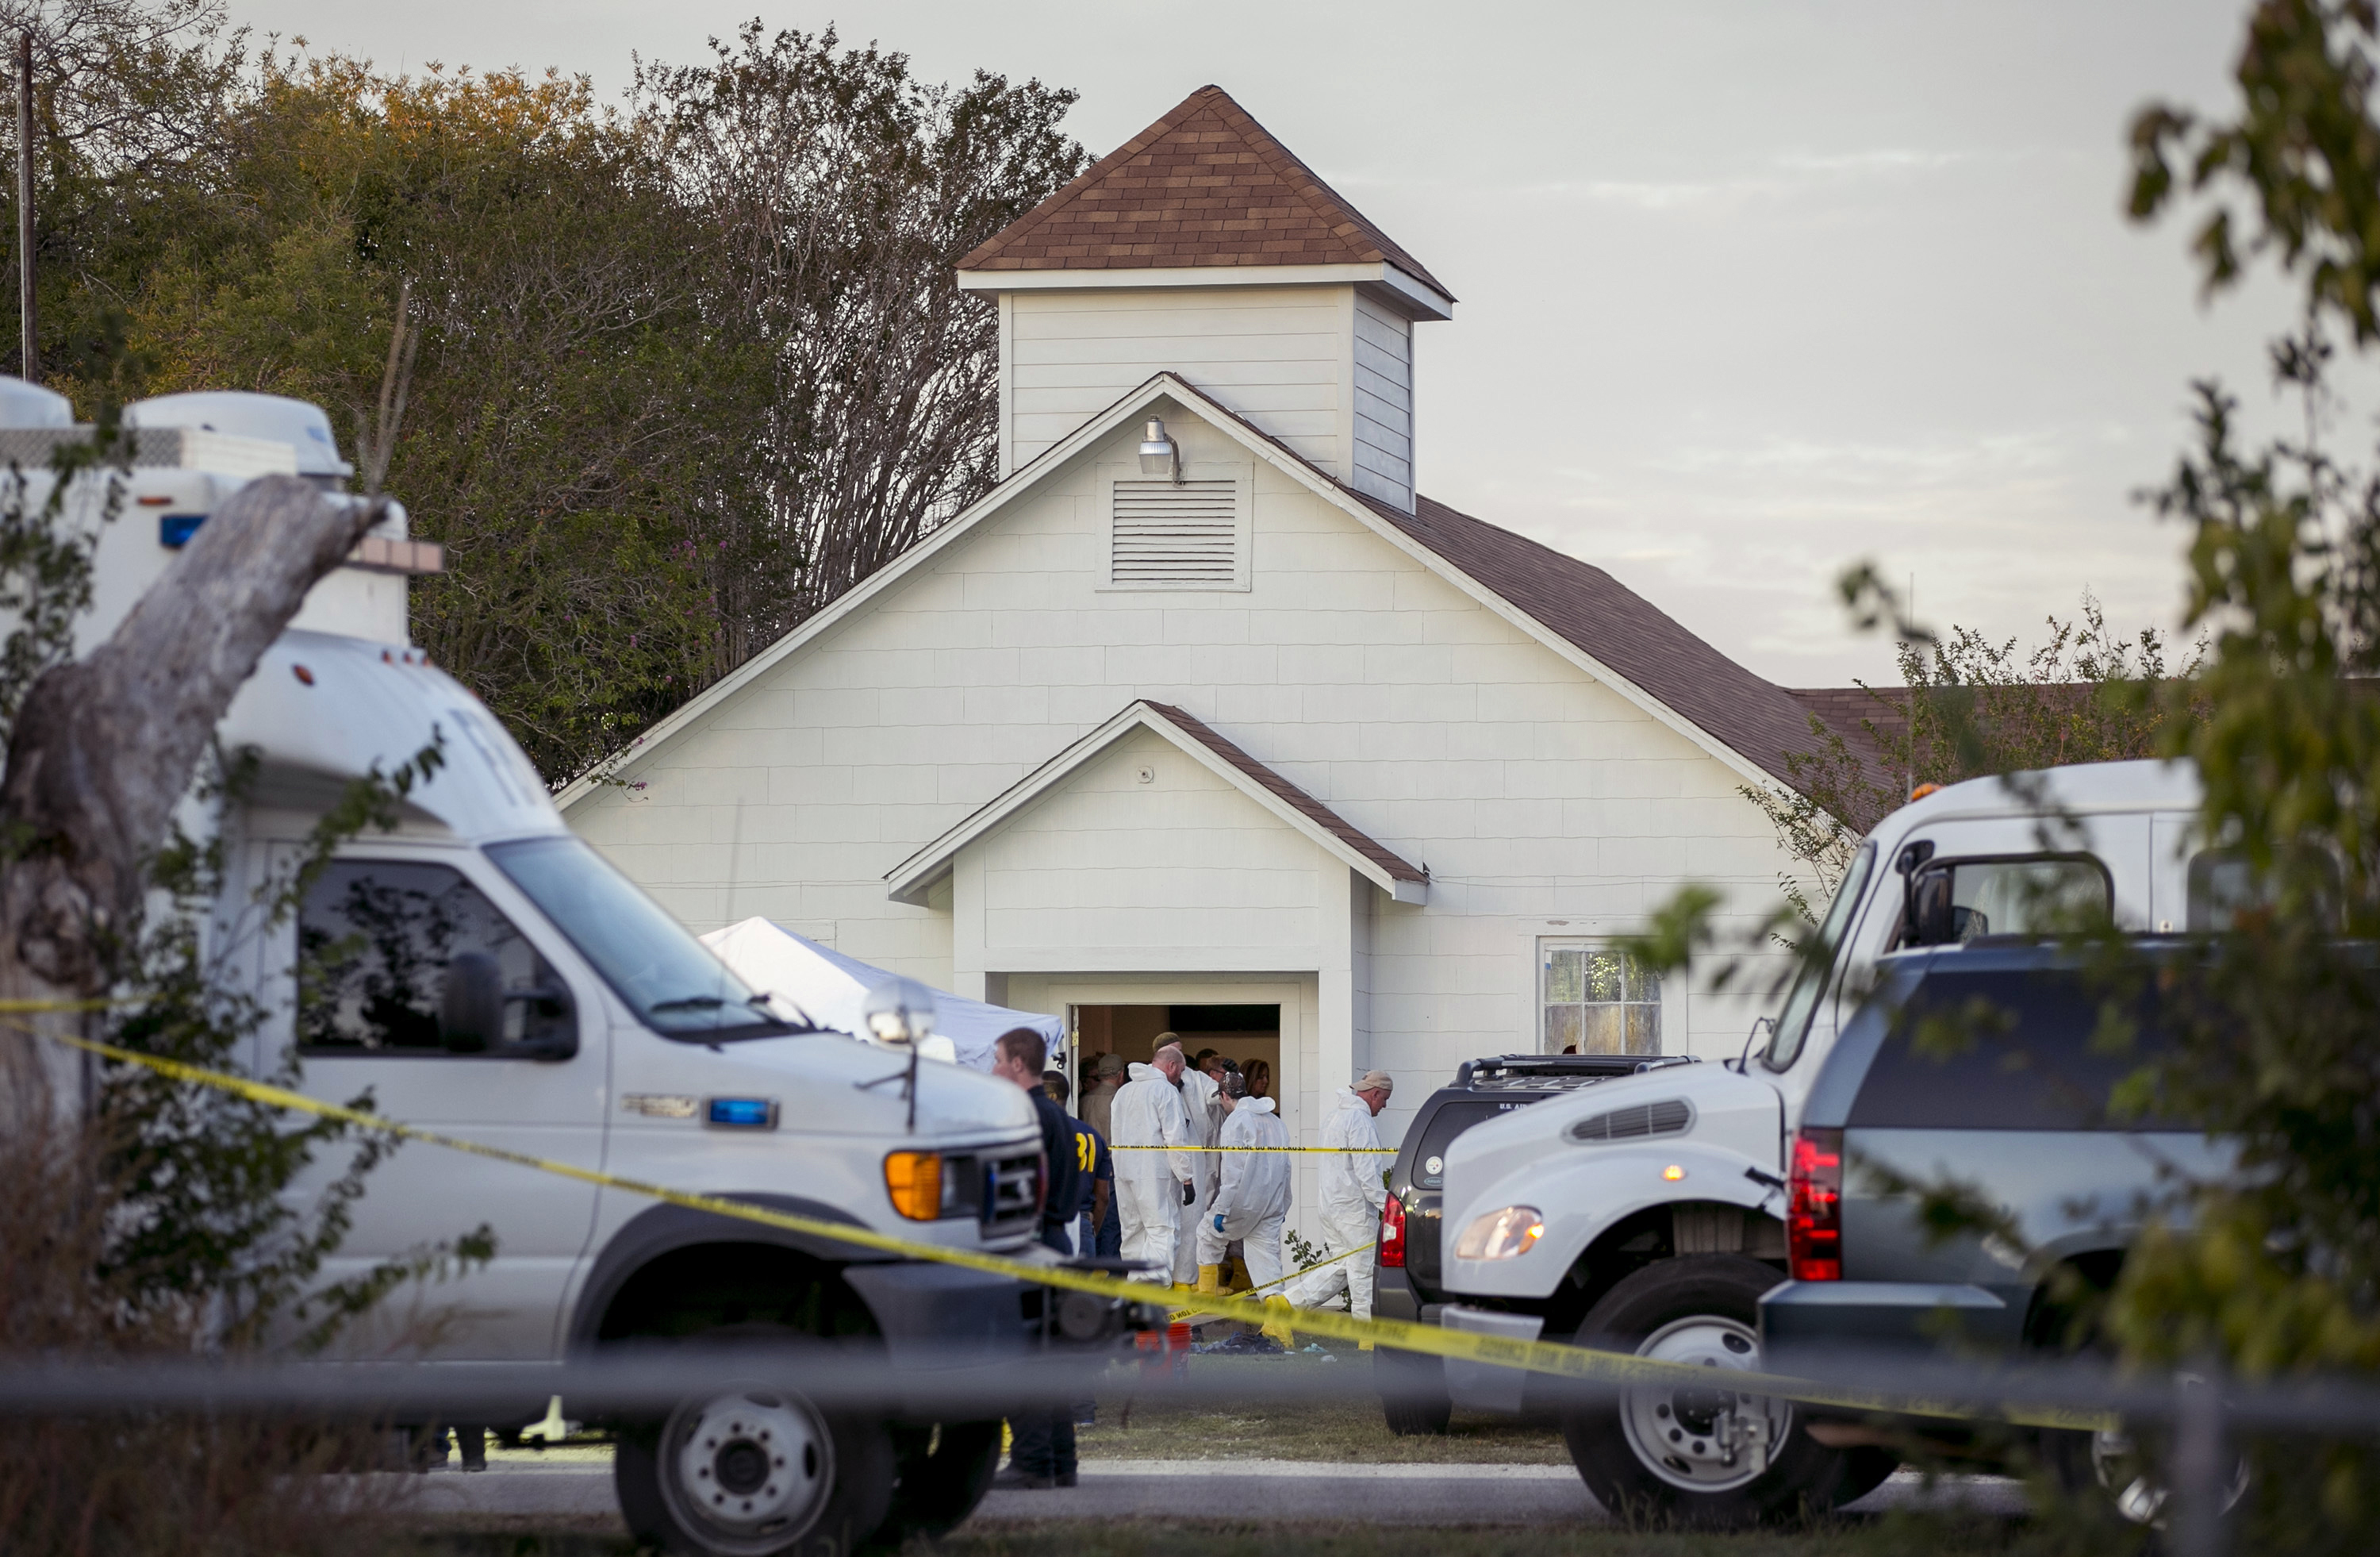 Investigators work at the First Baptist Church in Sutherland Springs, Texas, on Nov. 5, 2017. A man opened fire inside the church, killing at least 26 people.